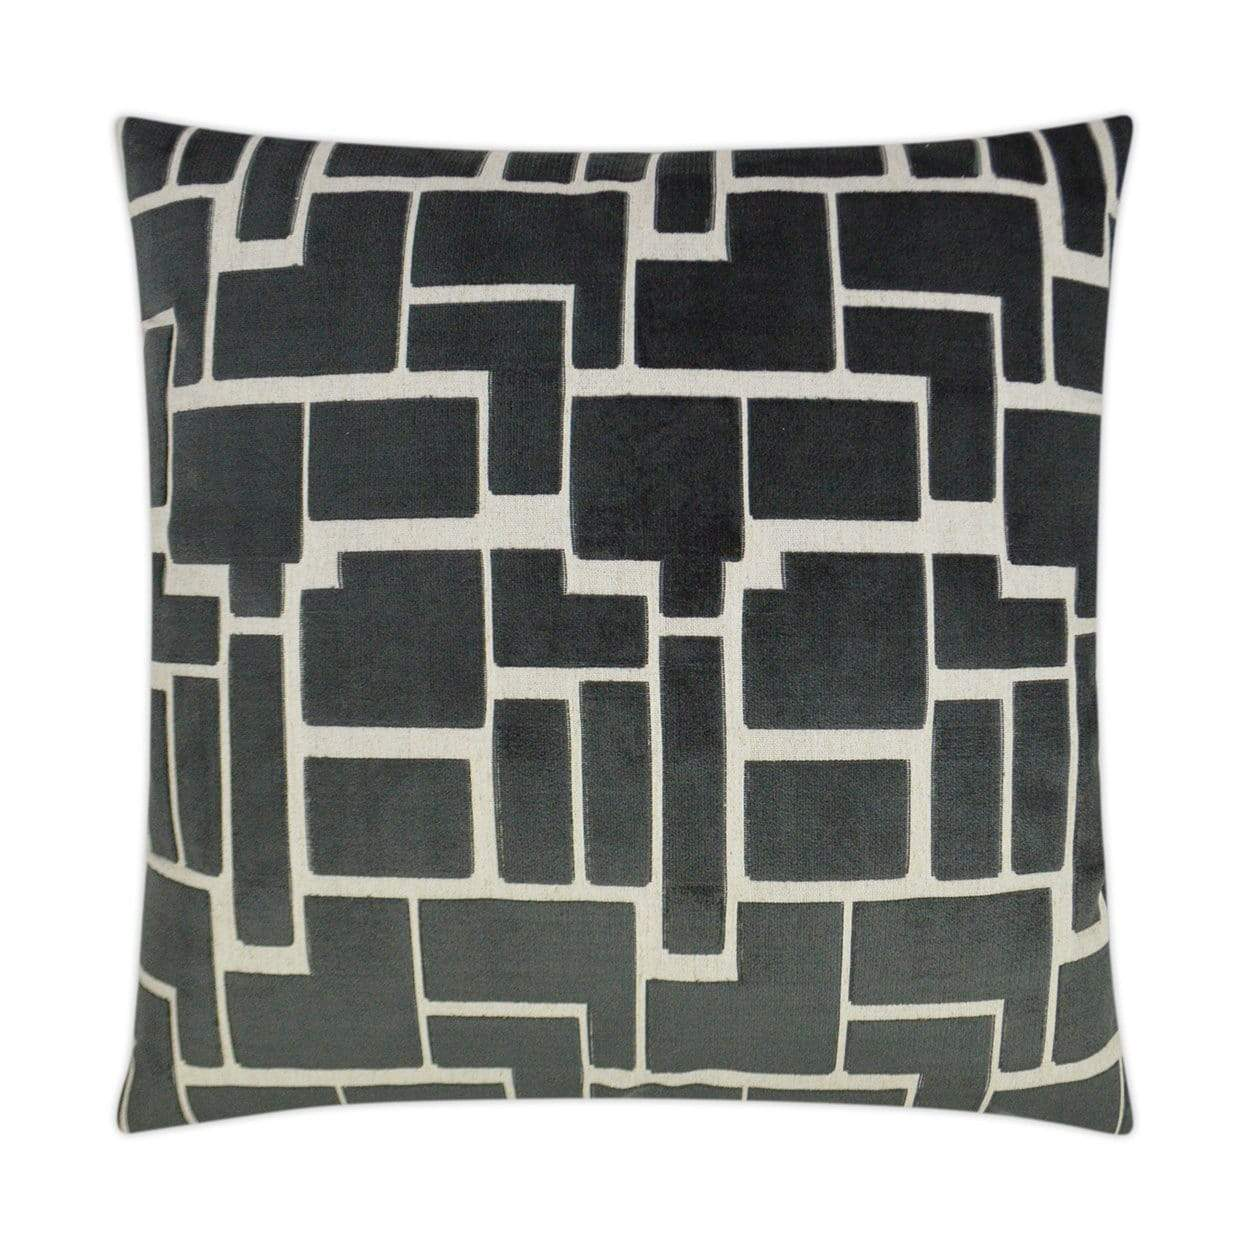 D.V. Kap D.V. Kap Aura Pillow - Available in 4 Colors Charcoal 3265-C